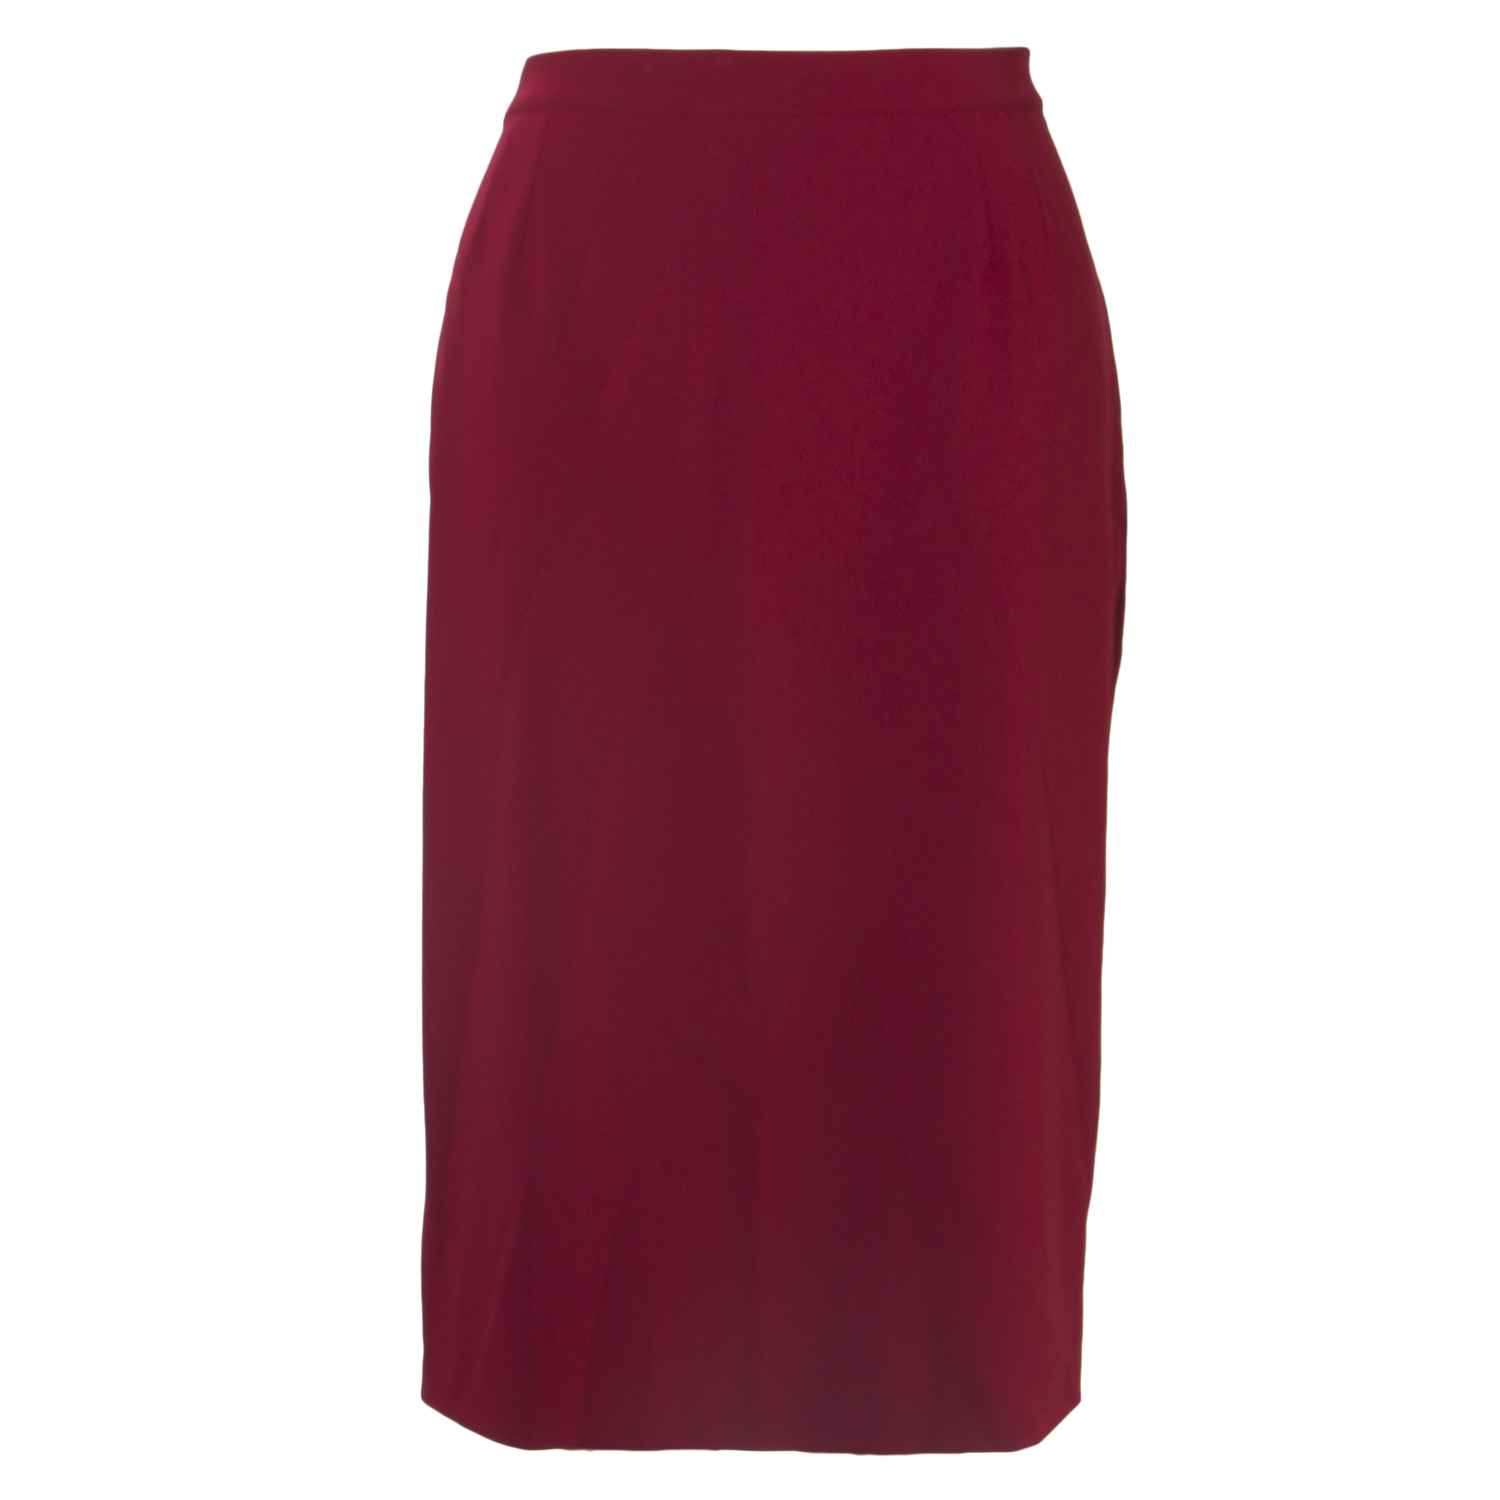 MARINA RINALDI Women/'s Cancan Pencil Skirt $350 NWT